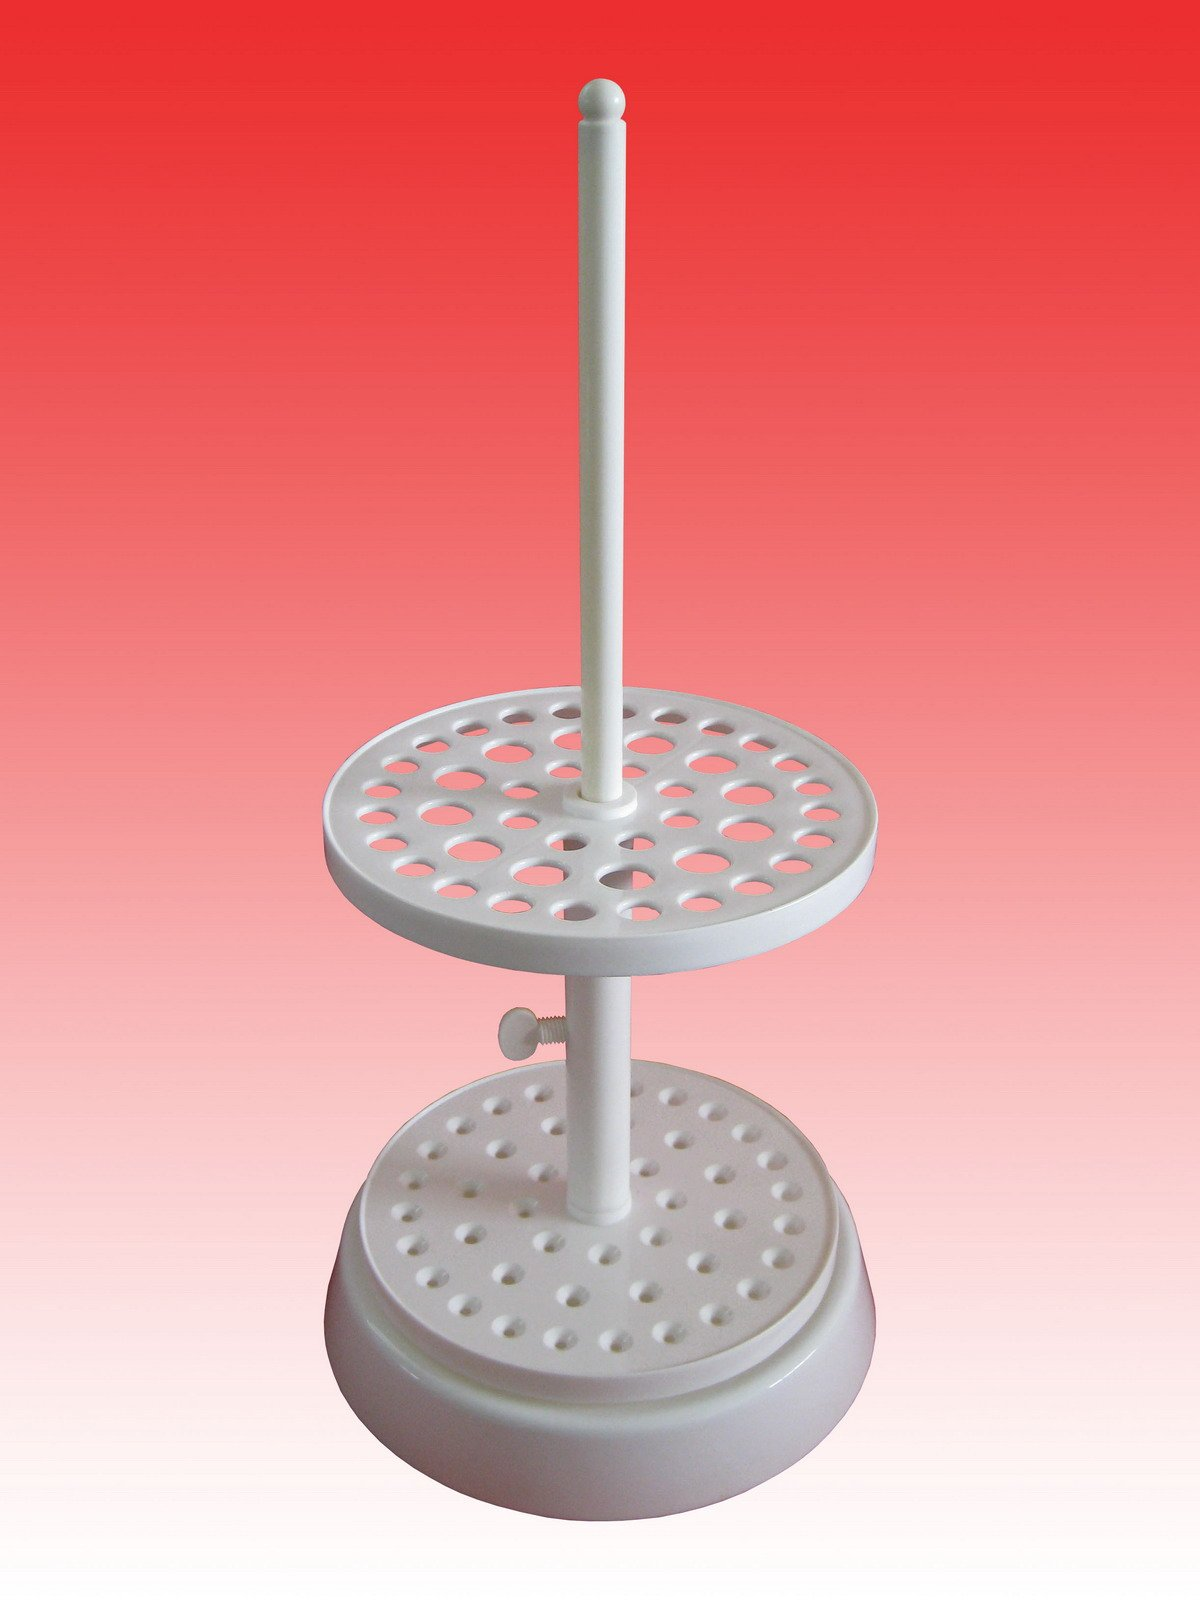 Beyondsupply-44 Place Plastics Round Polymethyl Pipette Pipettor Stand With Base by beyondsupply